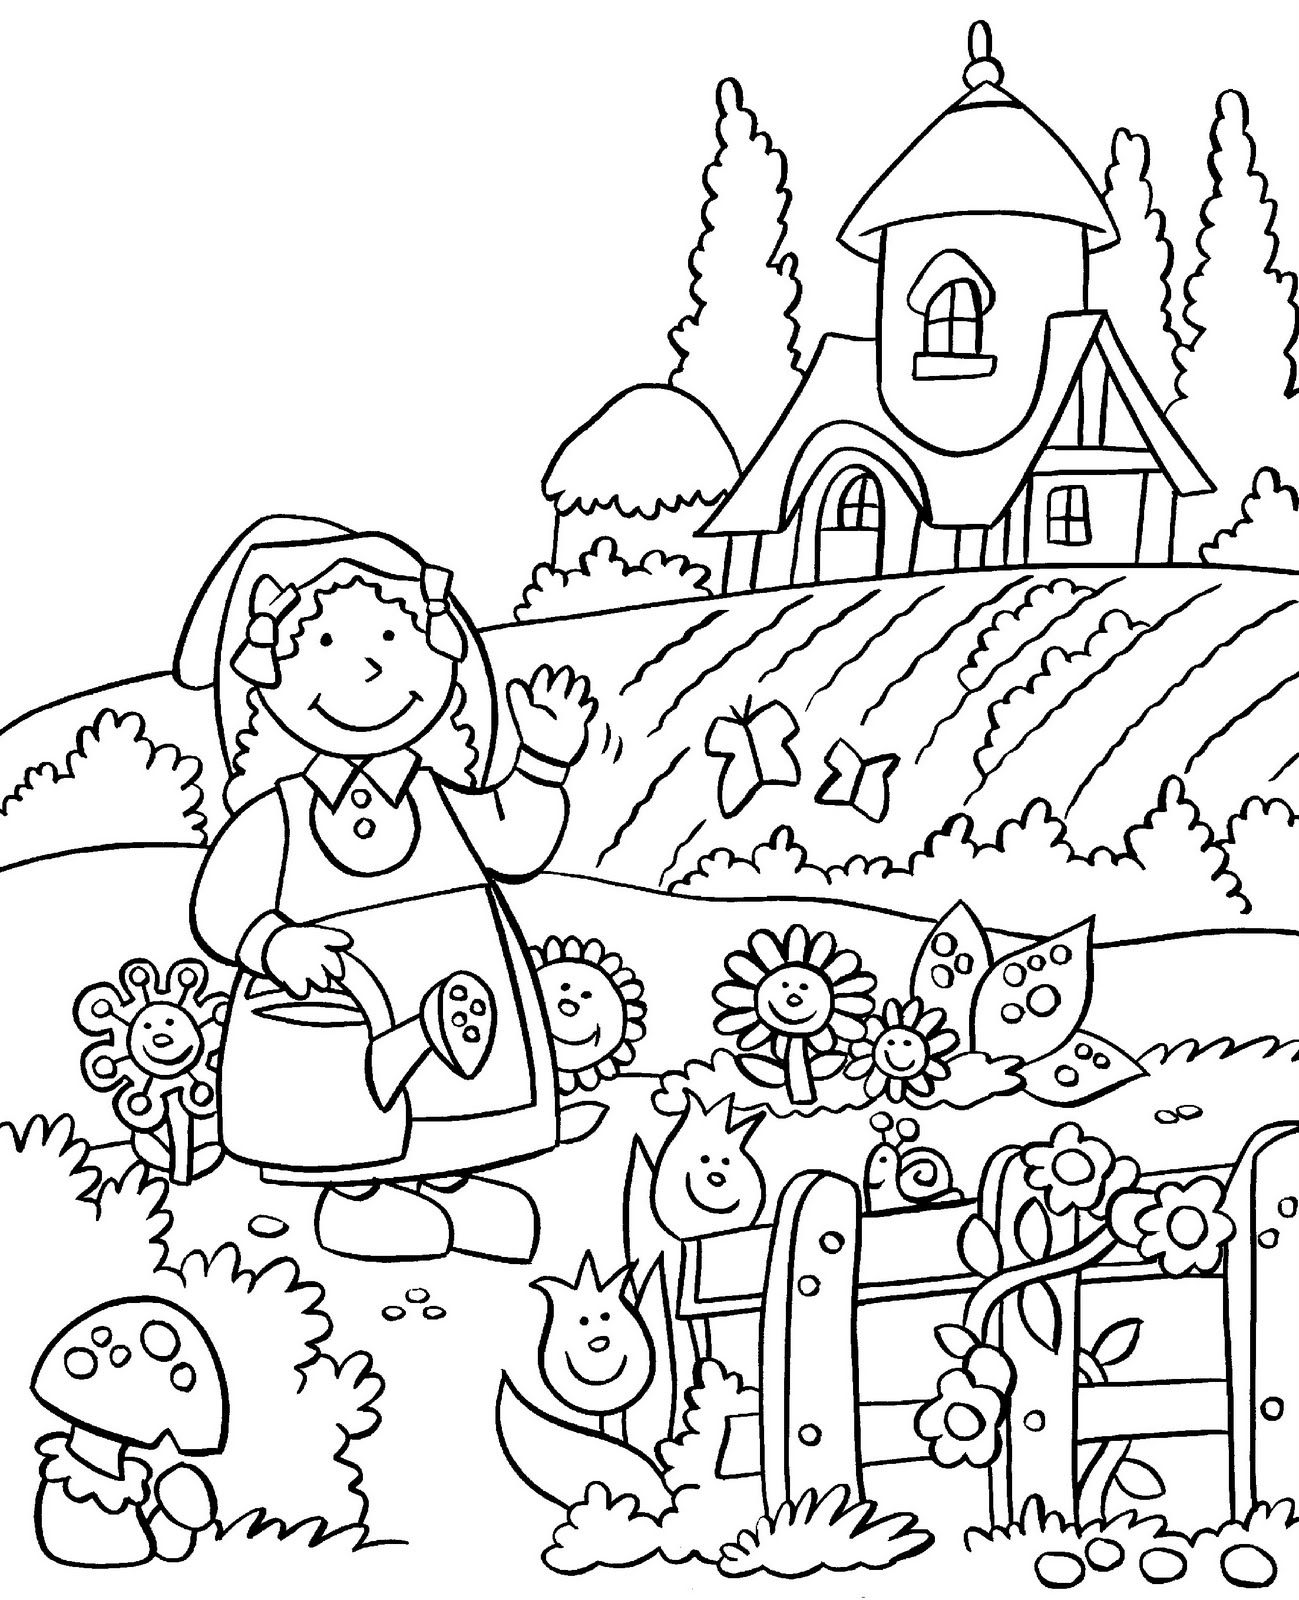 Gardening coloring page for kids